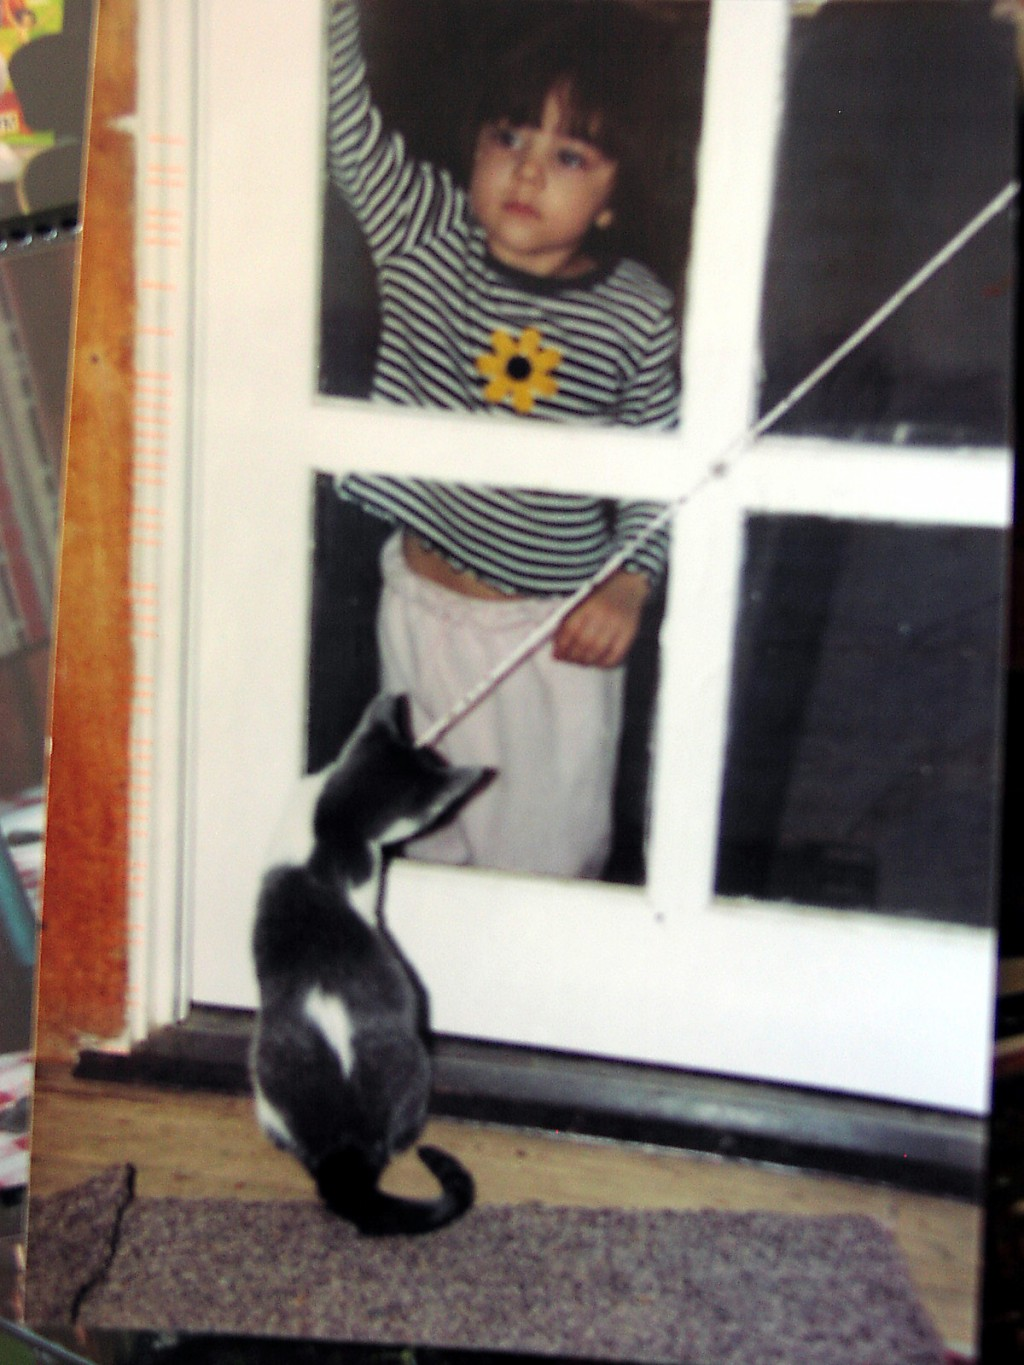 little girl at screen door with black and white cat.  Just like any postcard, pictures can be vertical or horizontal.  Source: Millie Kohler, CC BY-NC-ND, via special permission by Millie Kohler